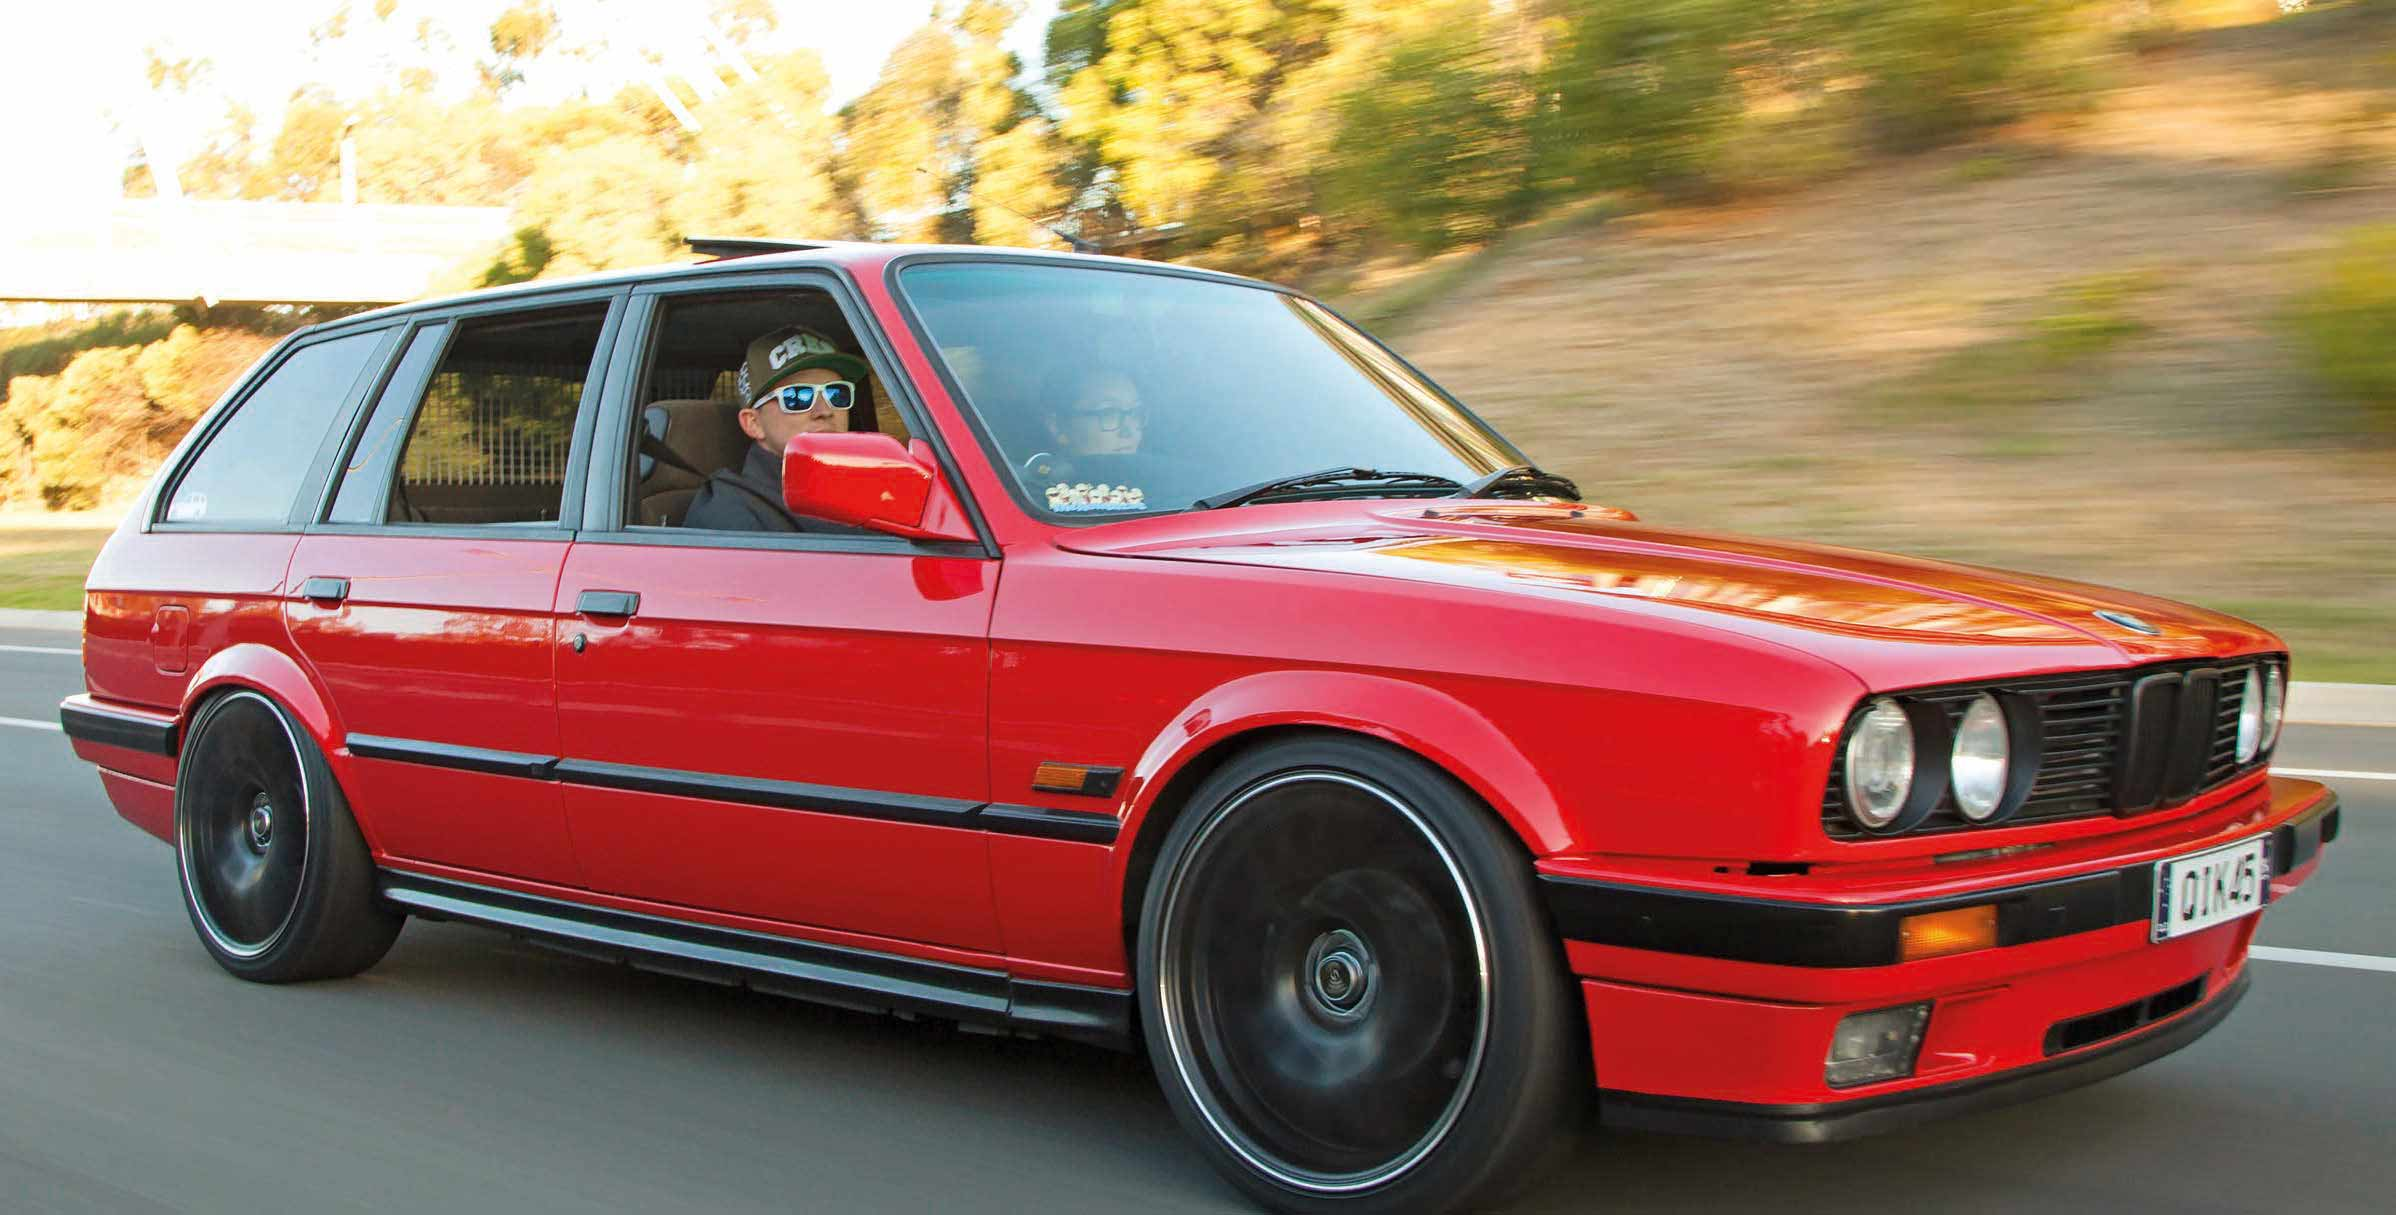 Little Red Booster Nissan SR20DET-swapped BMW E30 Touring